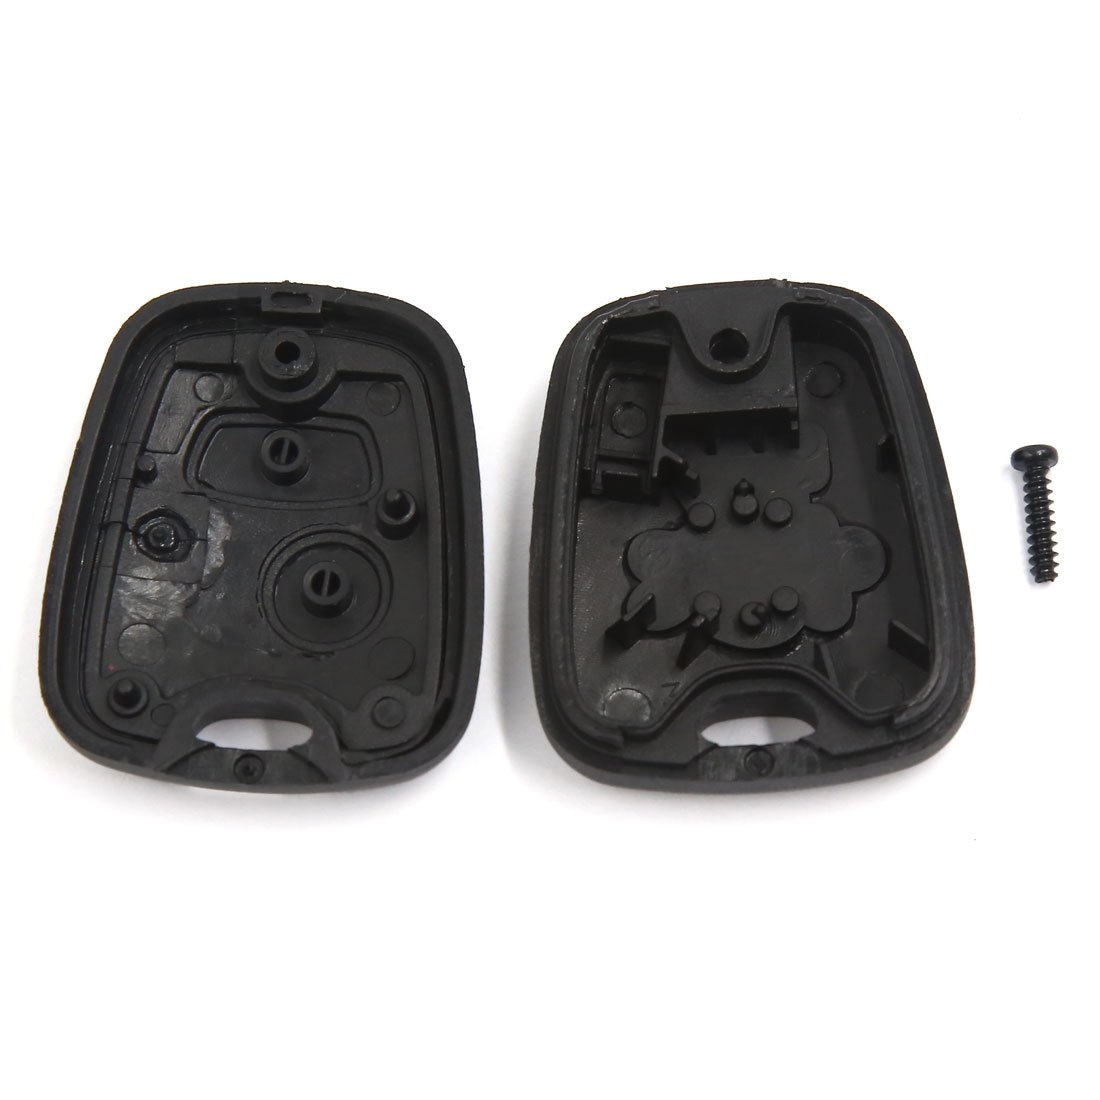 uxcell 2 Button Remote Key Case Shell Fob for Peugeot 107 207 307 407 106 206 306 406